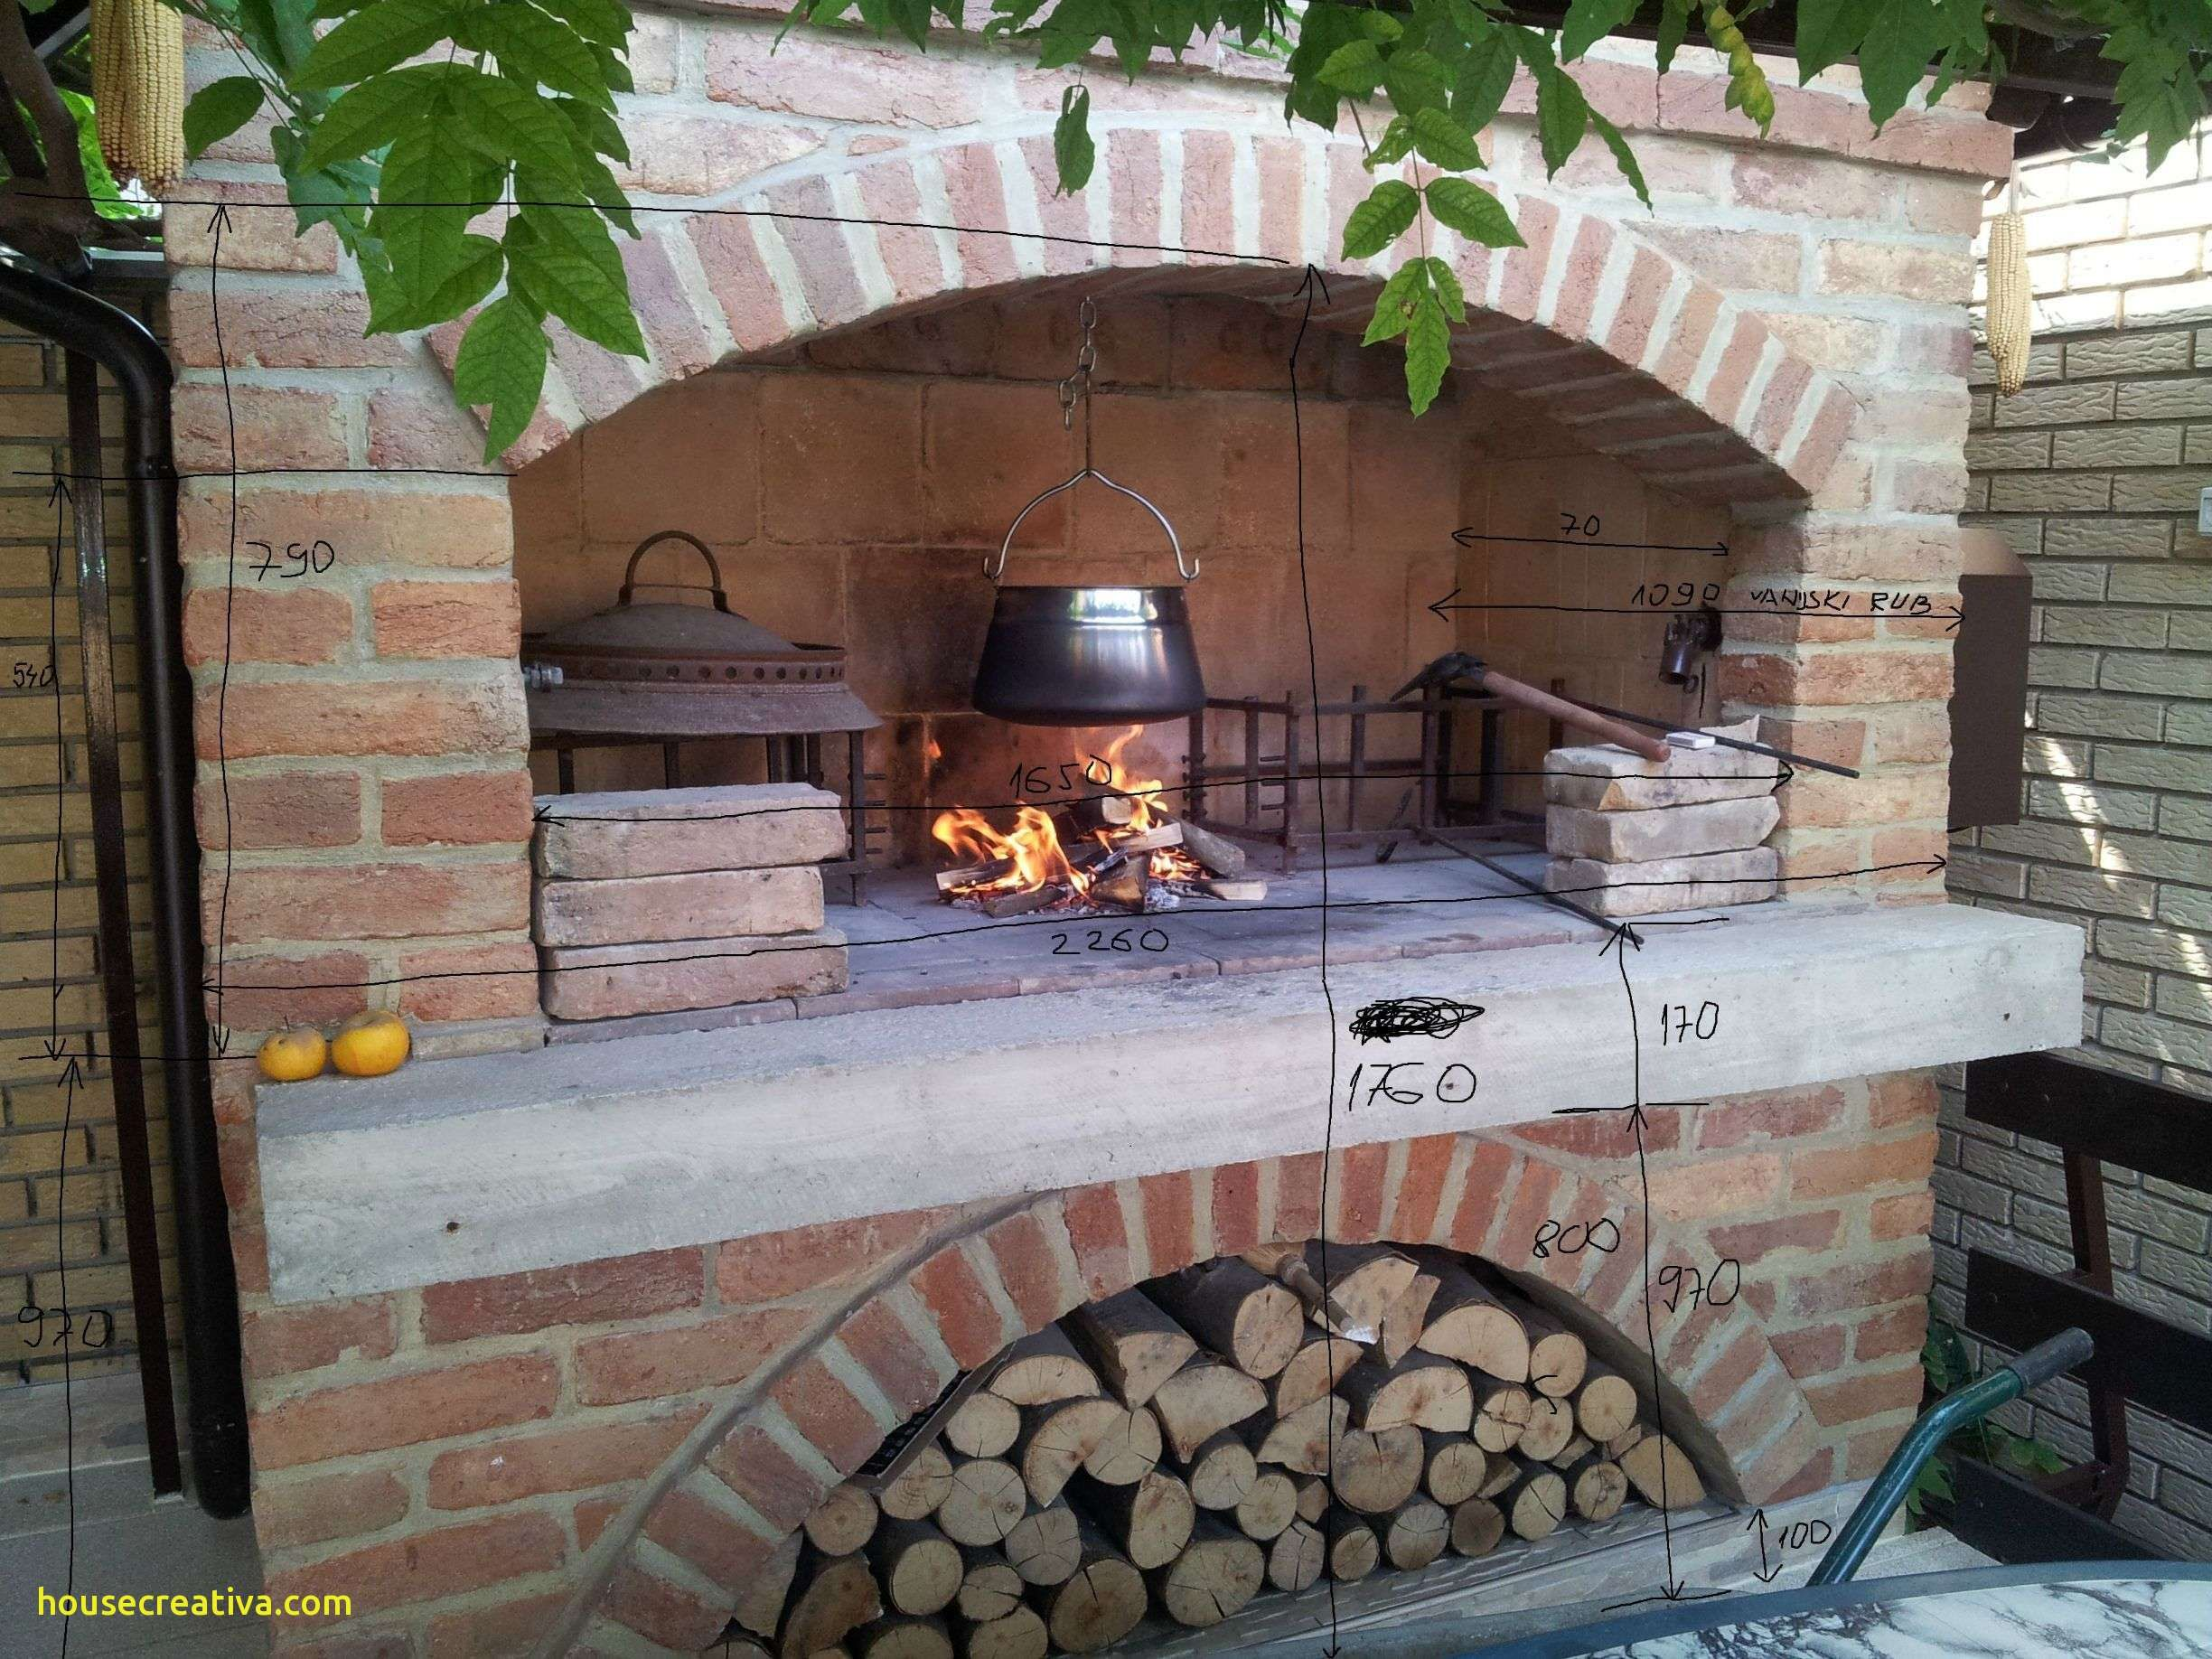 Fireplace Pizza Oven Combo Luxury Luxury Outdoor Fireplace Pizza Oven Bo Homedecoration